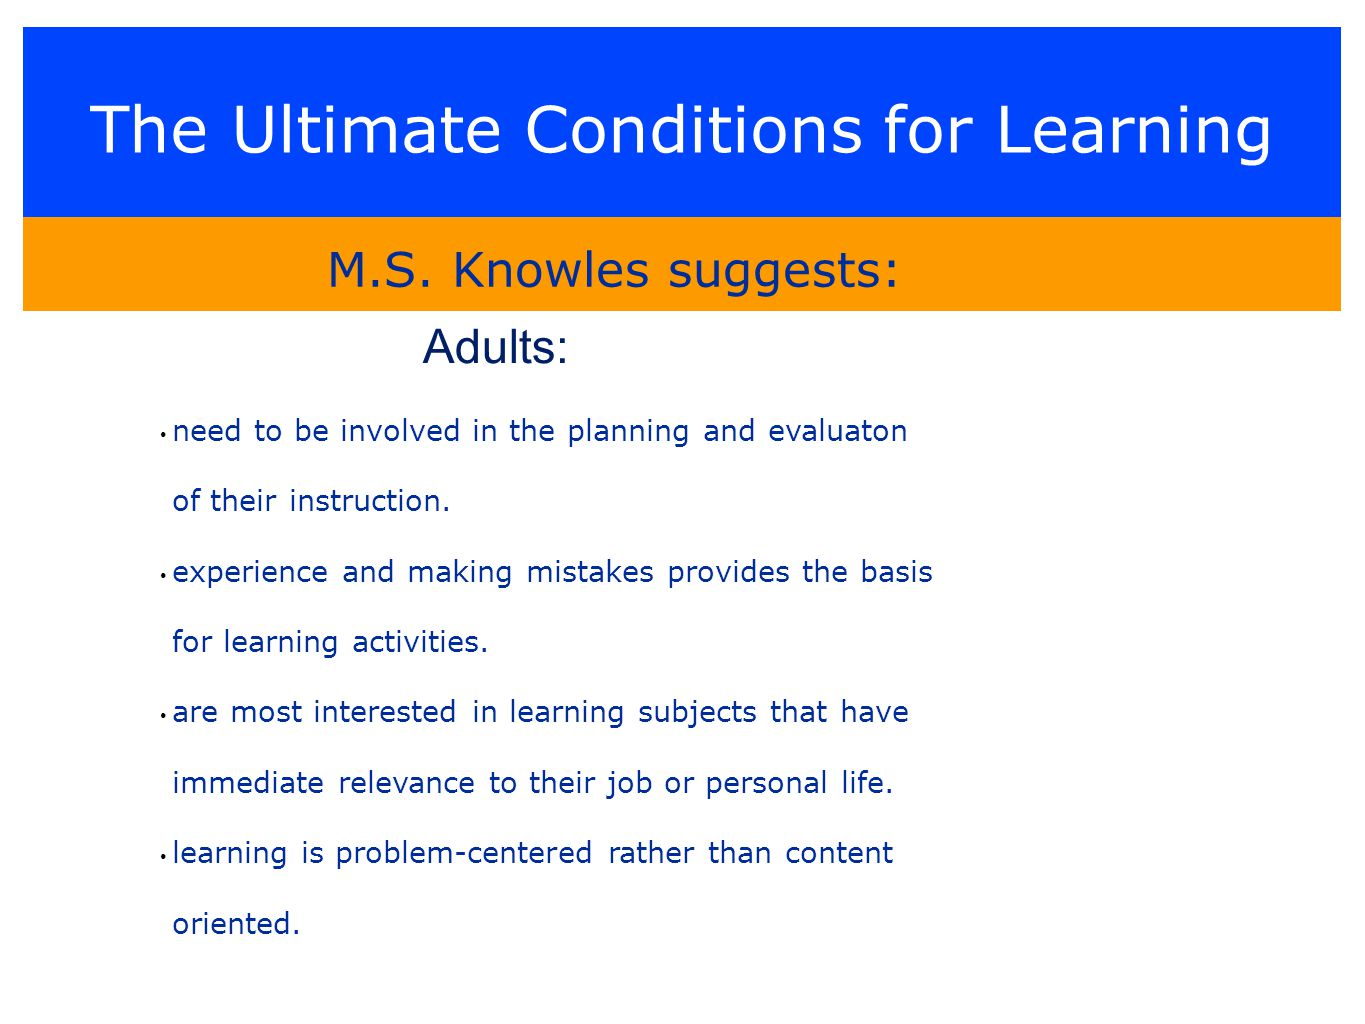 The Ultimate Conditions for Learning need to be involved in the planning and evaluaton of their instruction.